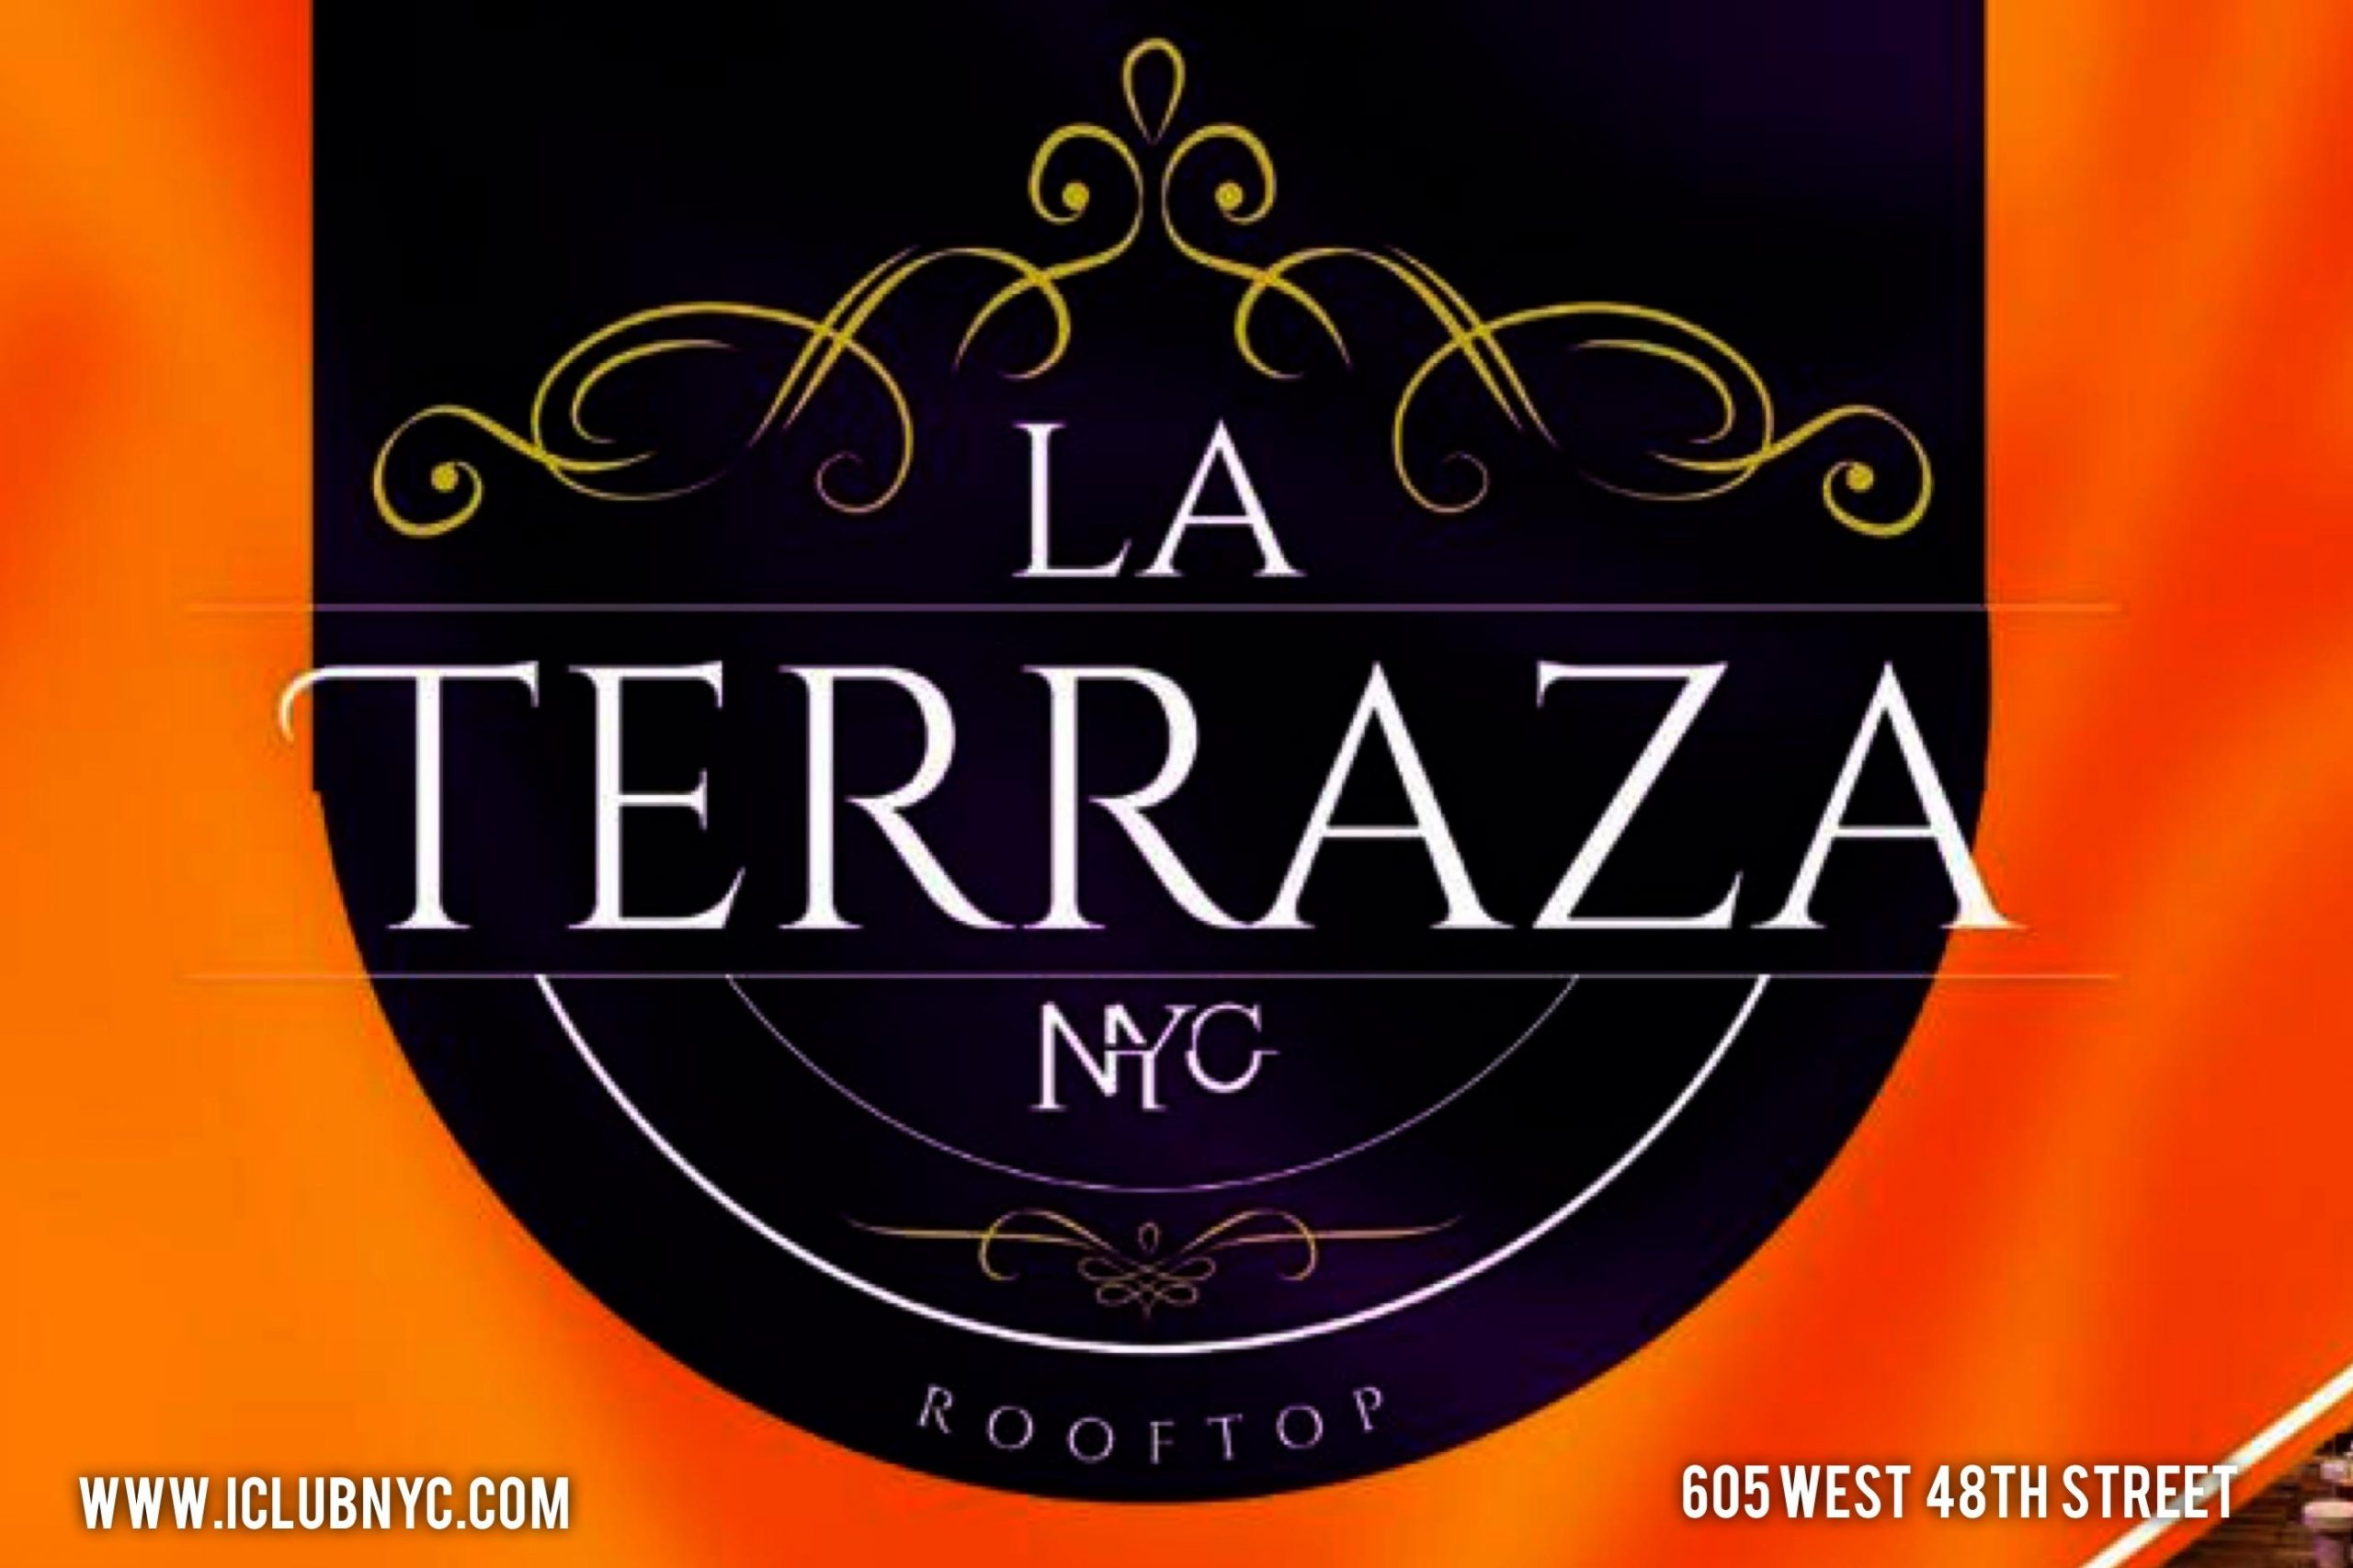 87618 image scaled - LA TERRAZA NYC #1 SATURDAY NIGHT LATIN PARTY | LATIN VIBES